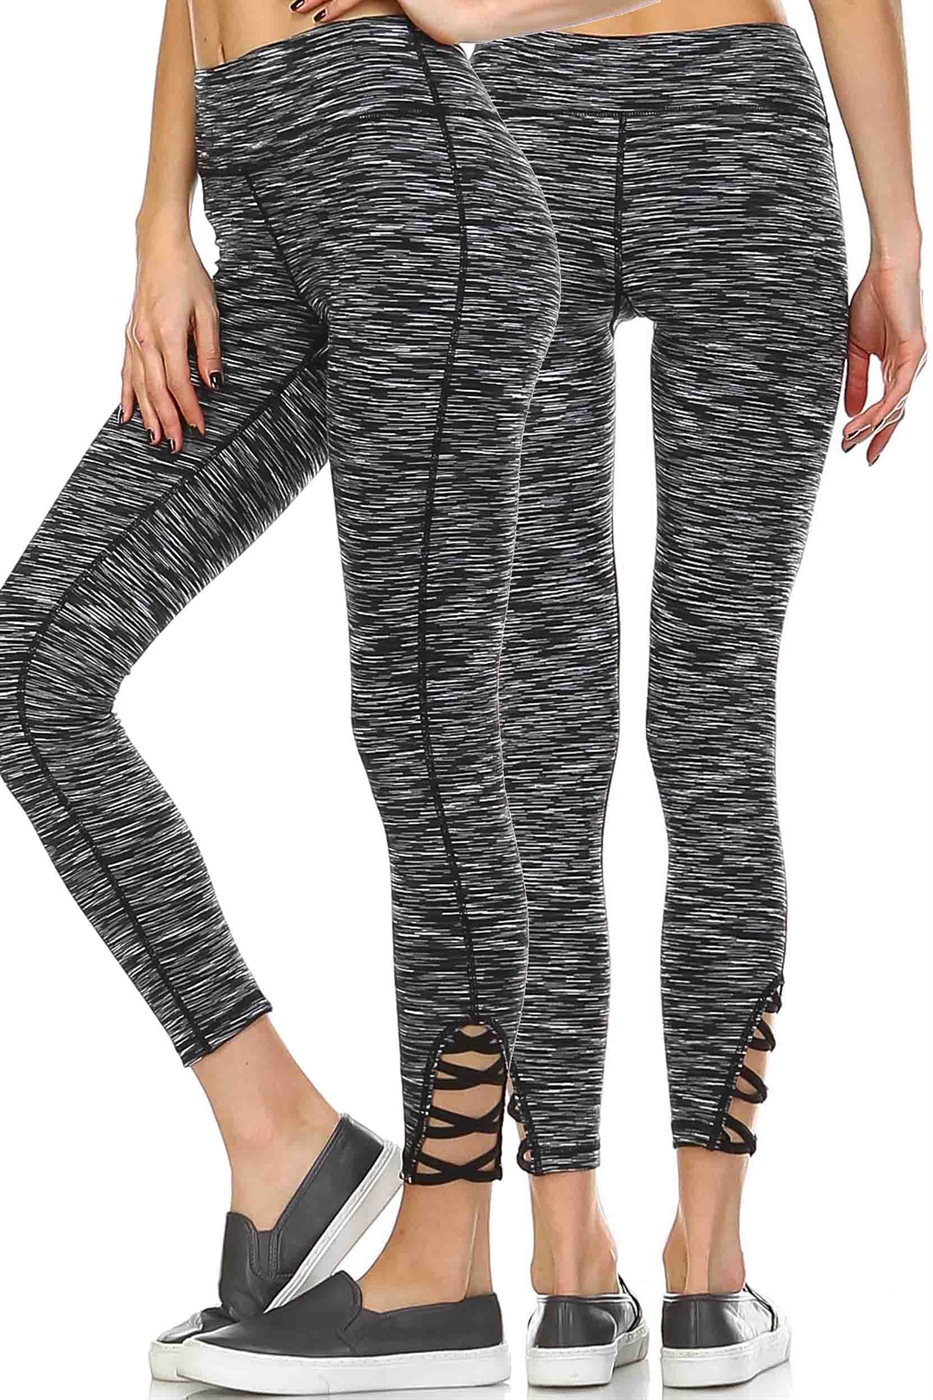 CRISS CROSS LEGGINGS - orangeshine.com